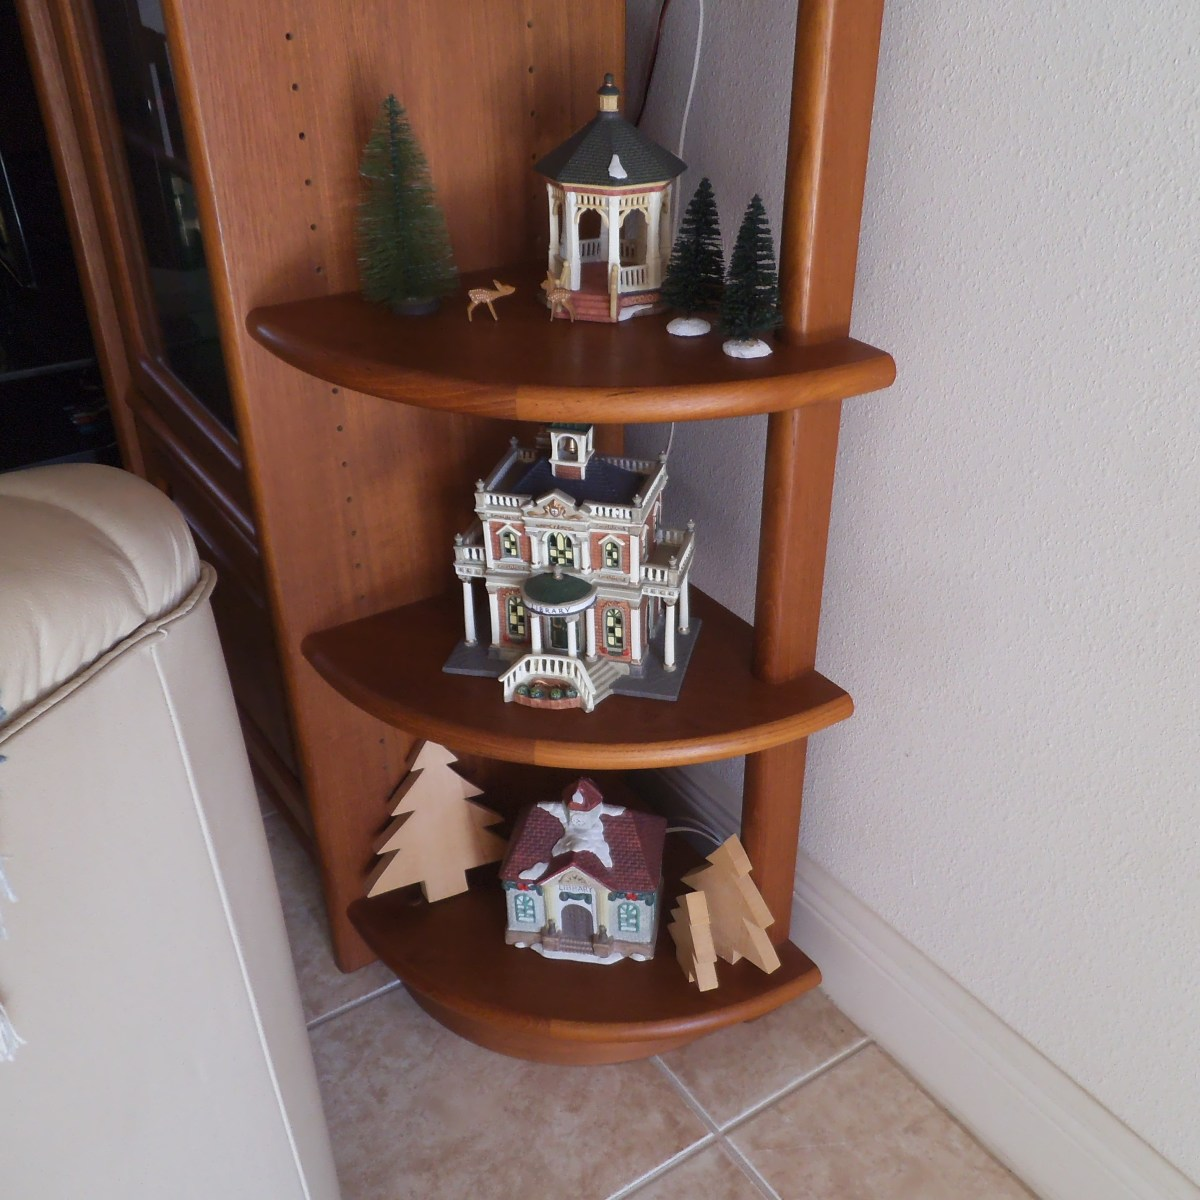 Some people set up a whole village scene with miniature houses at Christmas. I only have a few pieces so I display them this way.